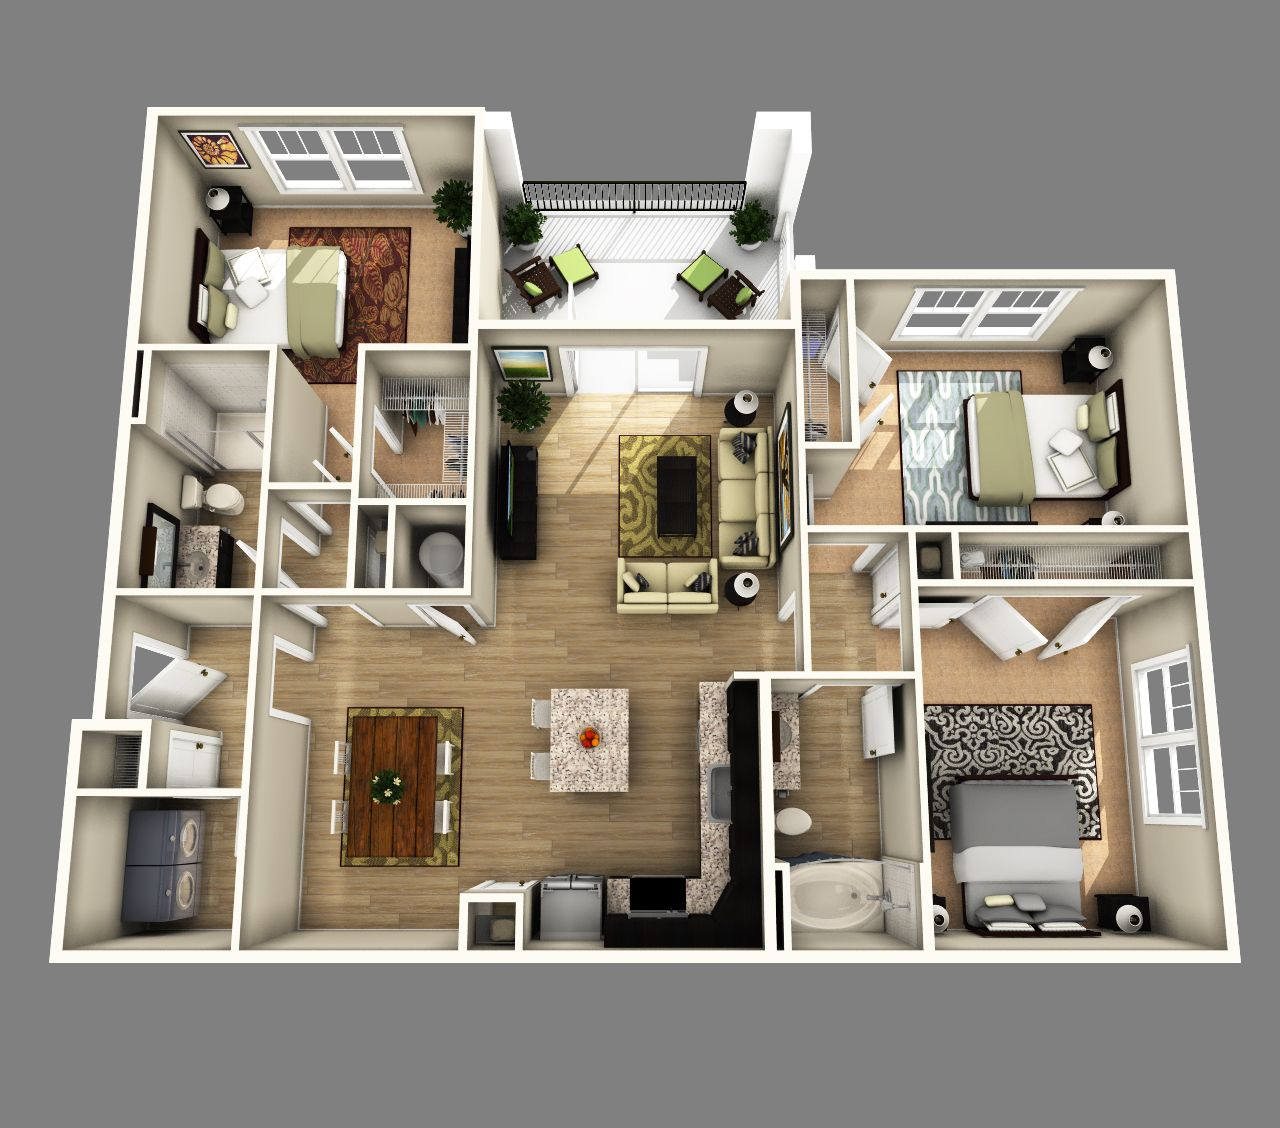 Home Design Ideas 3d: Pin By Home Decoration On Home Design Ideas